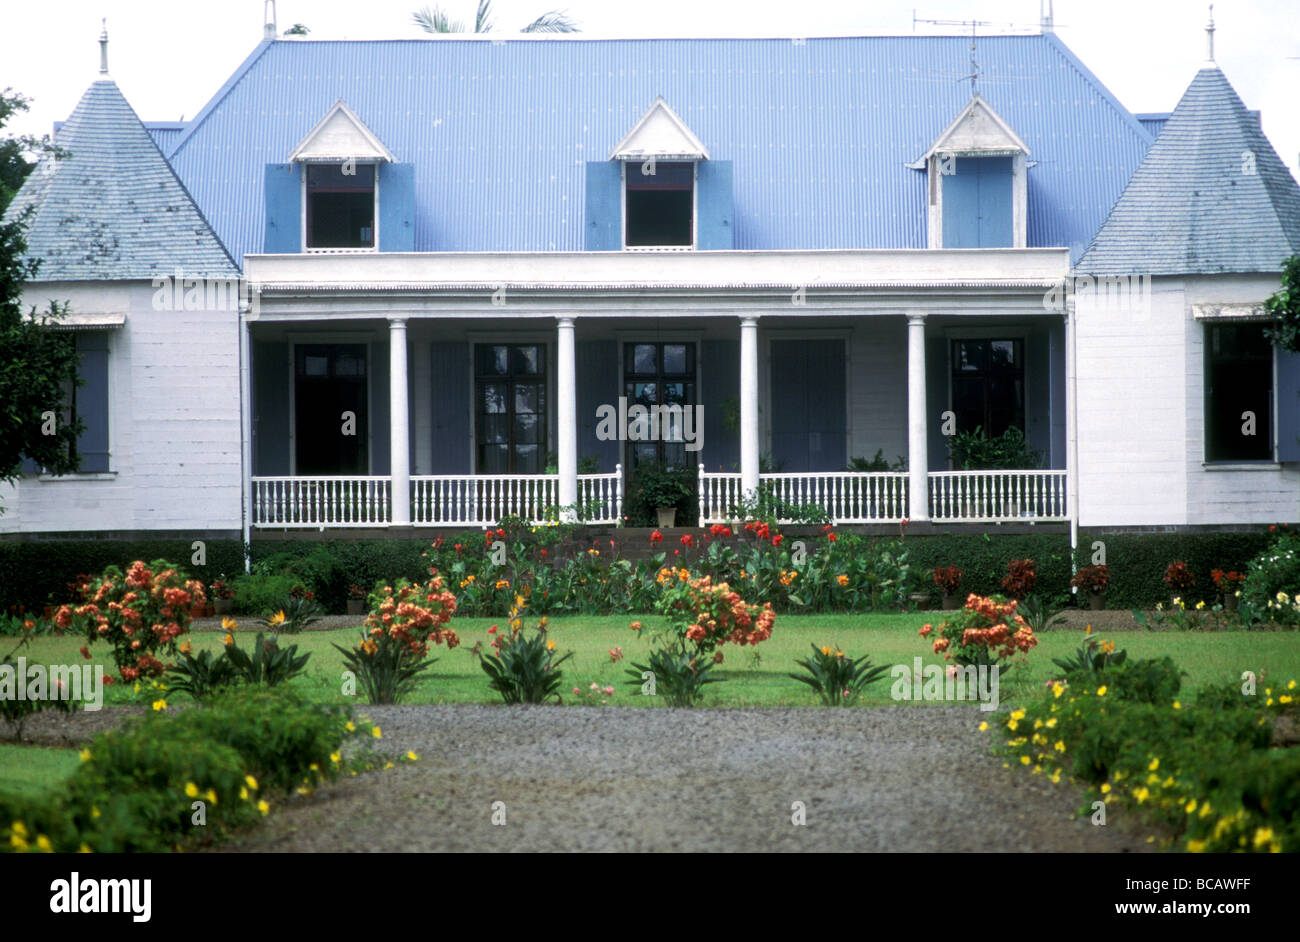 townhouse in curepipe mauritius - Stock Image